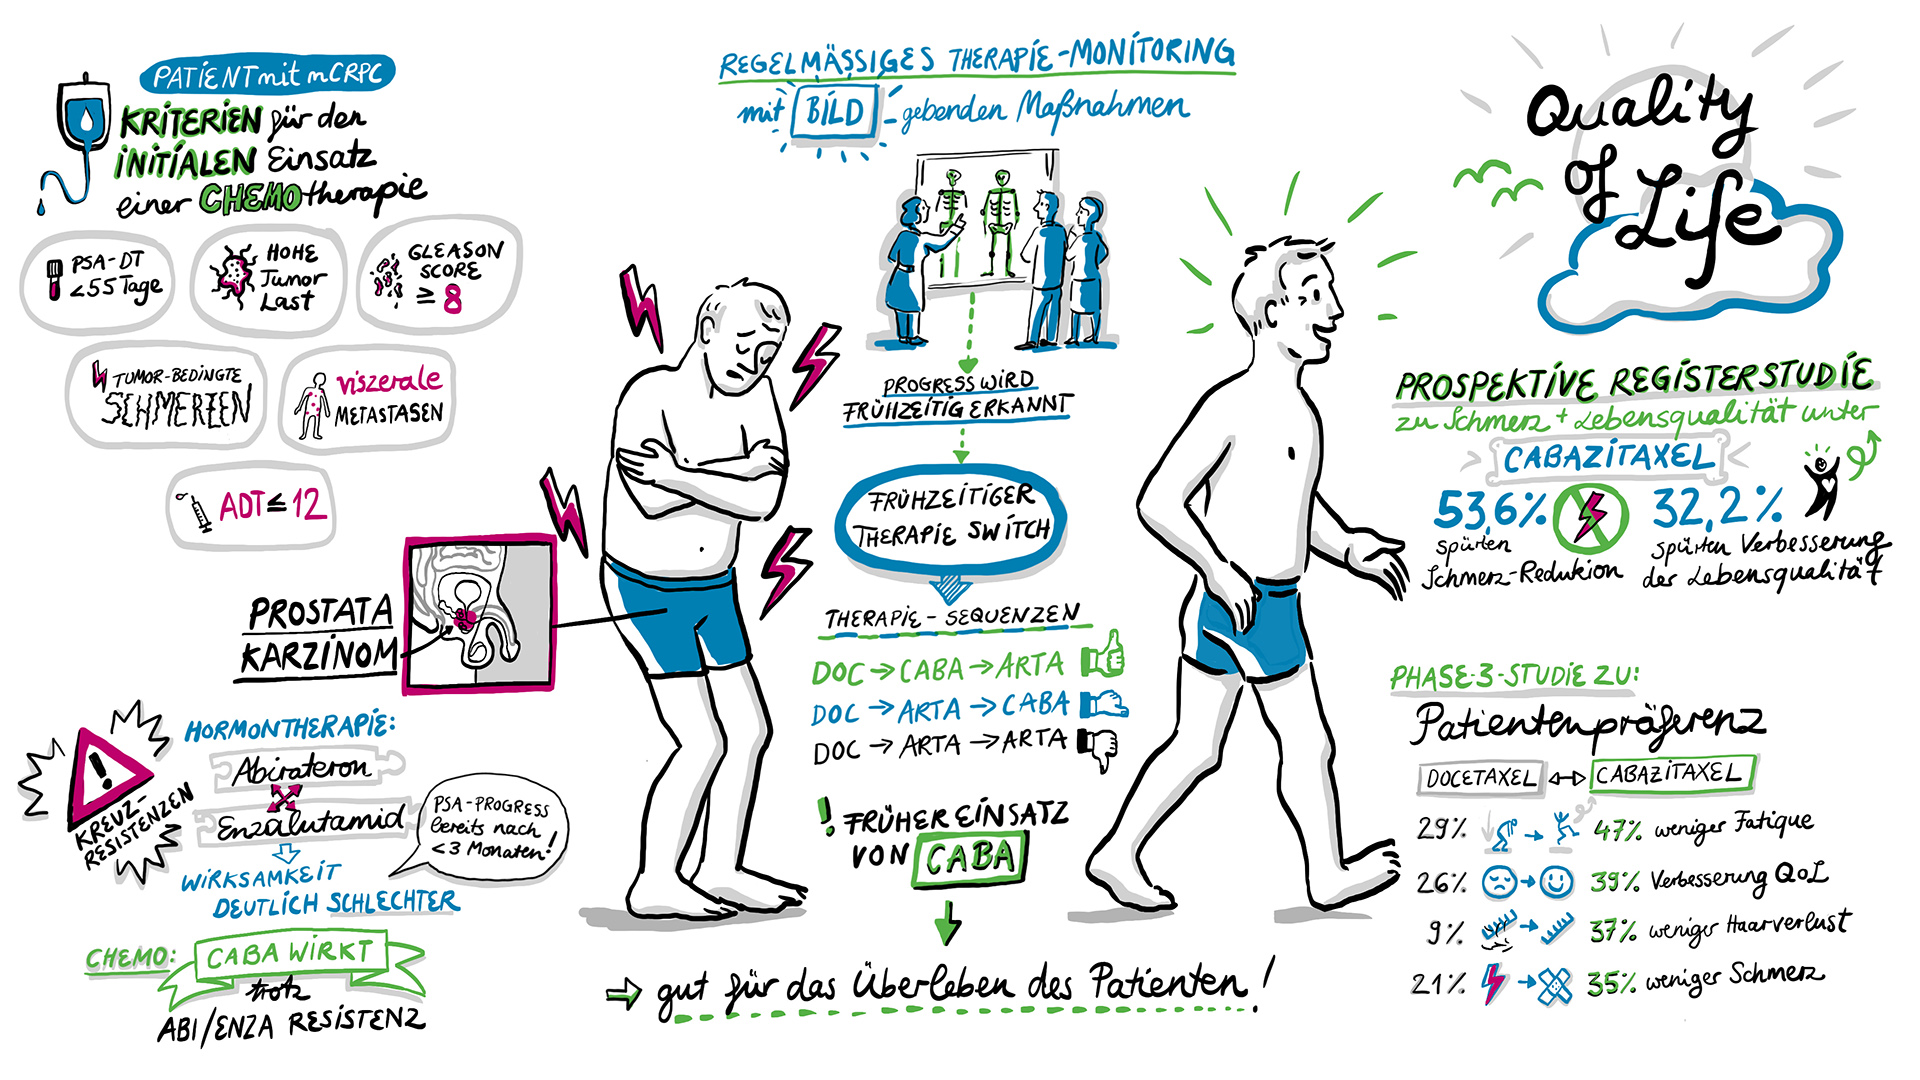 Onkologie Graphic Recording